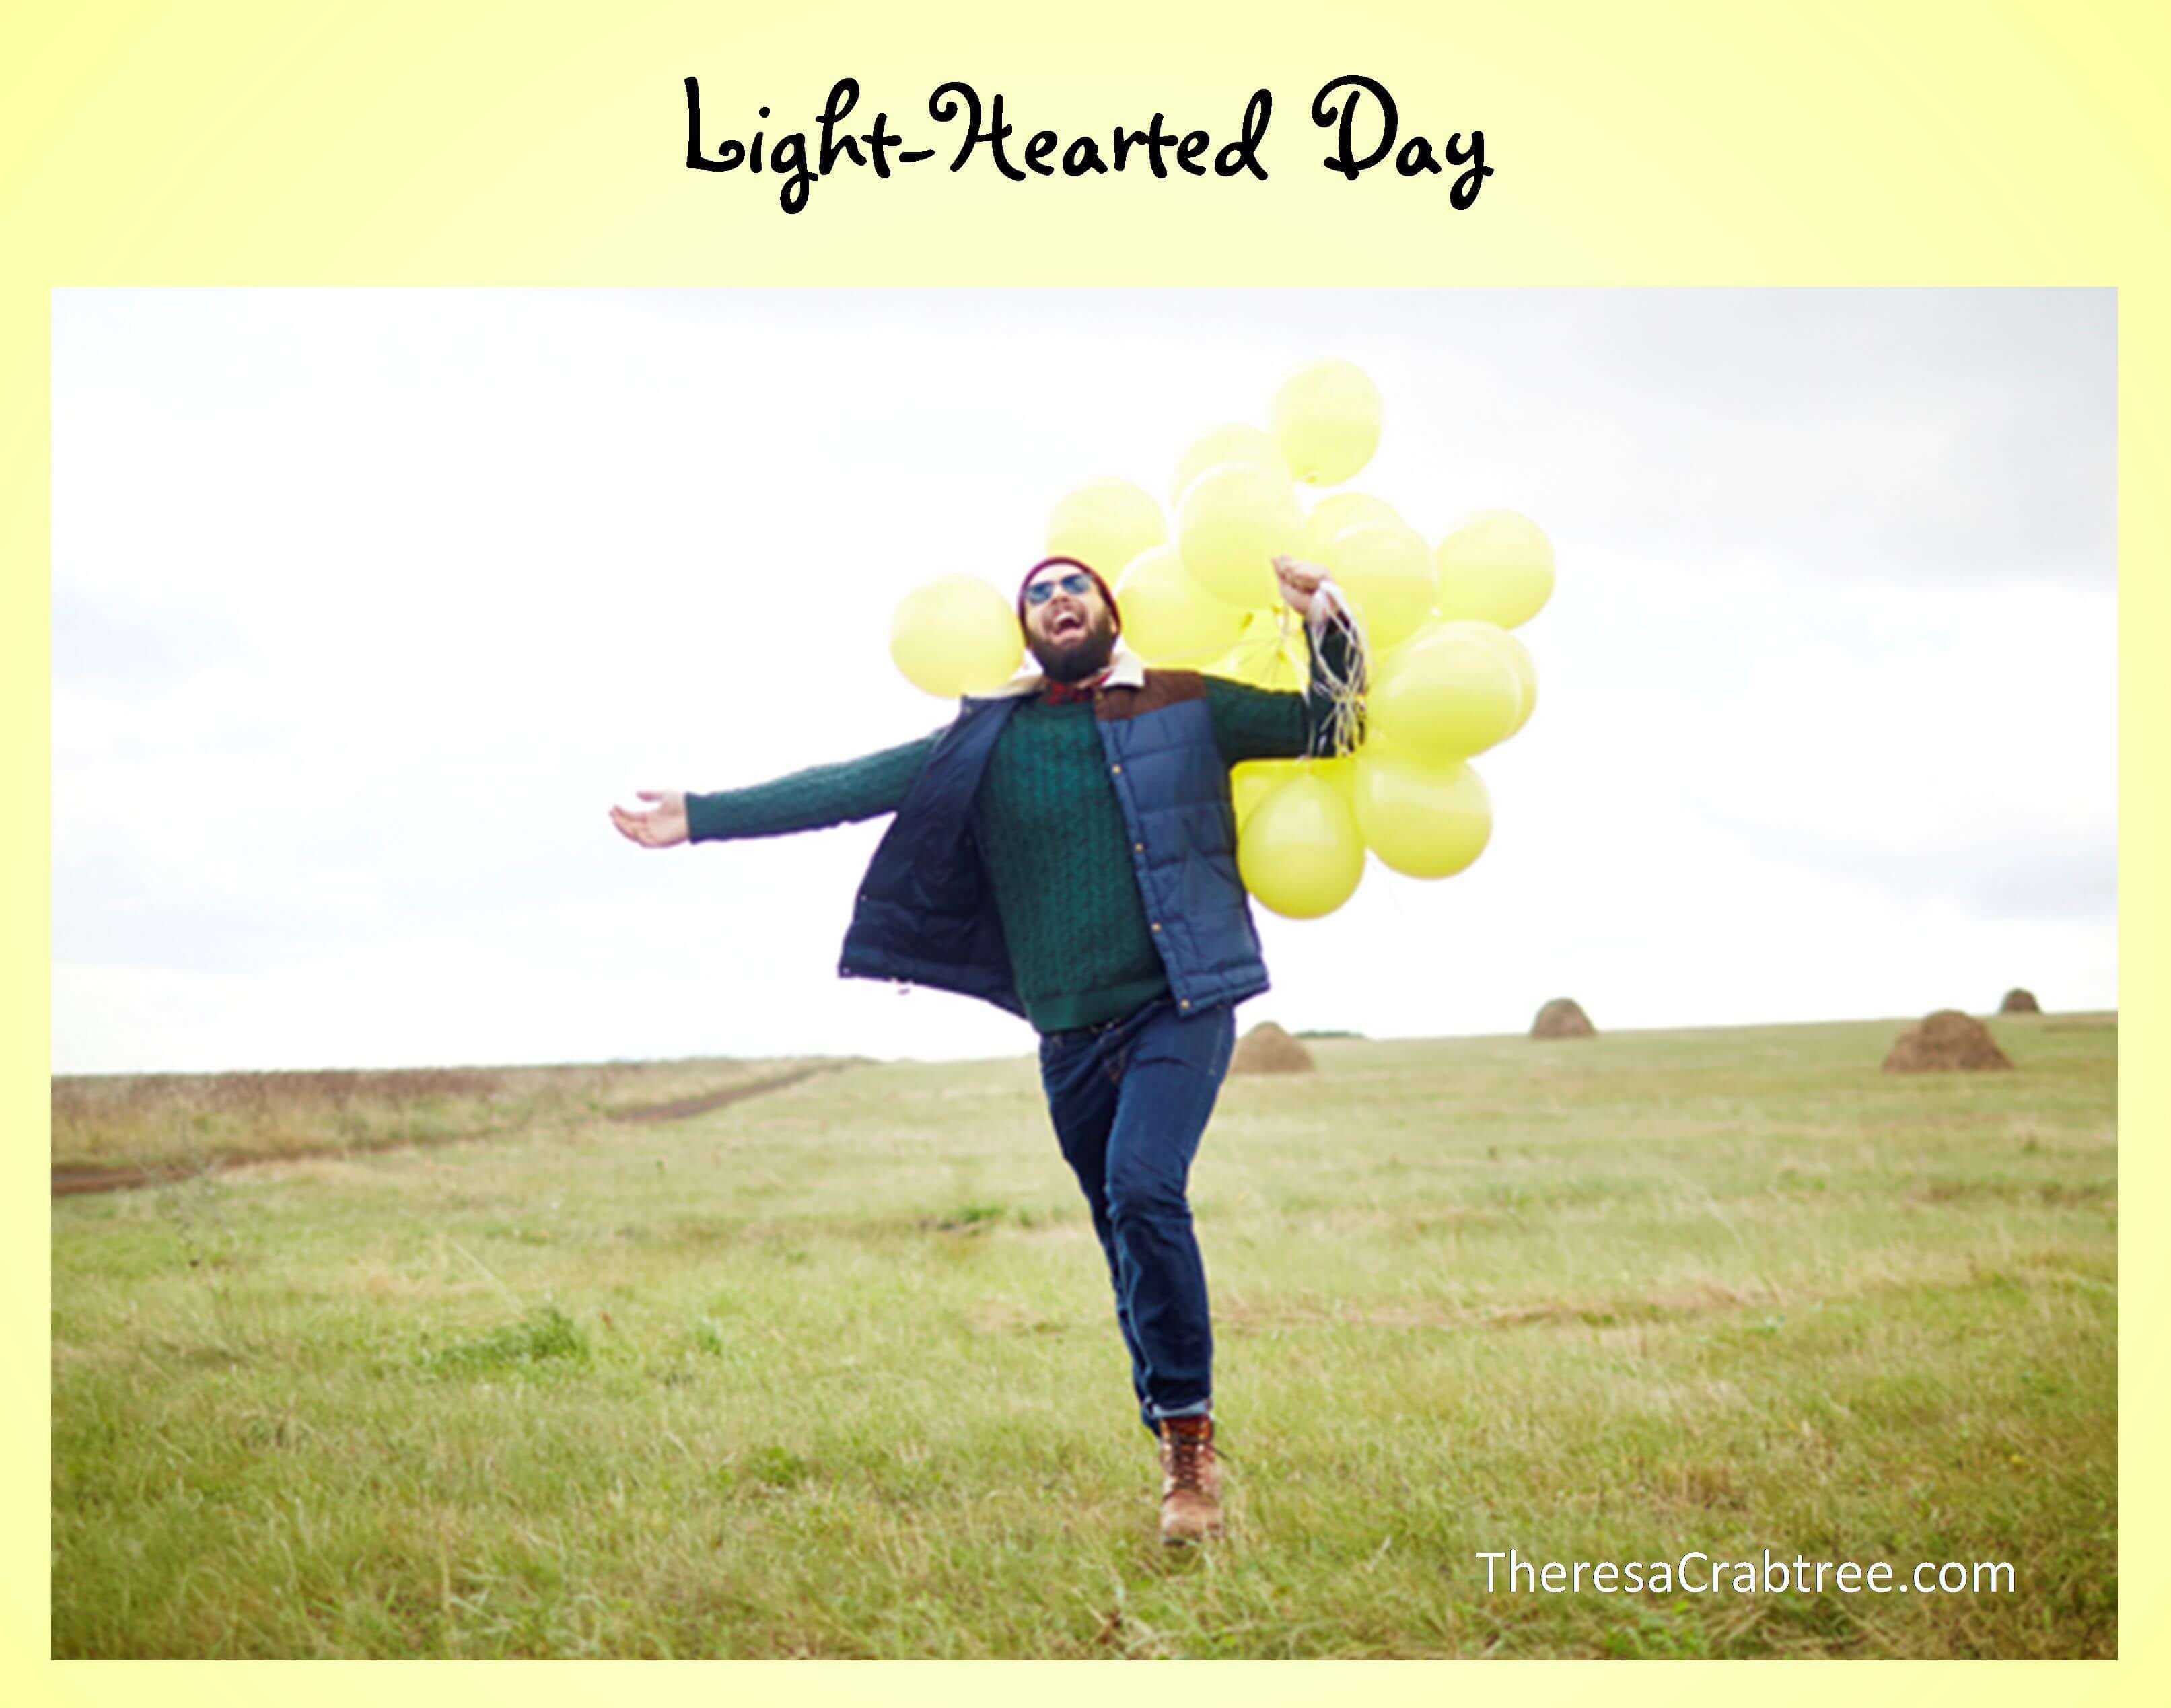 Soul Connection 229 ~ Light-Hearted Day